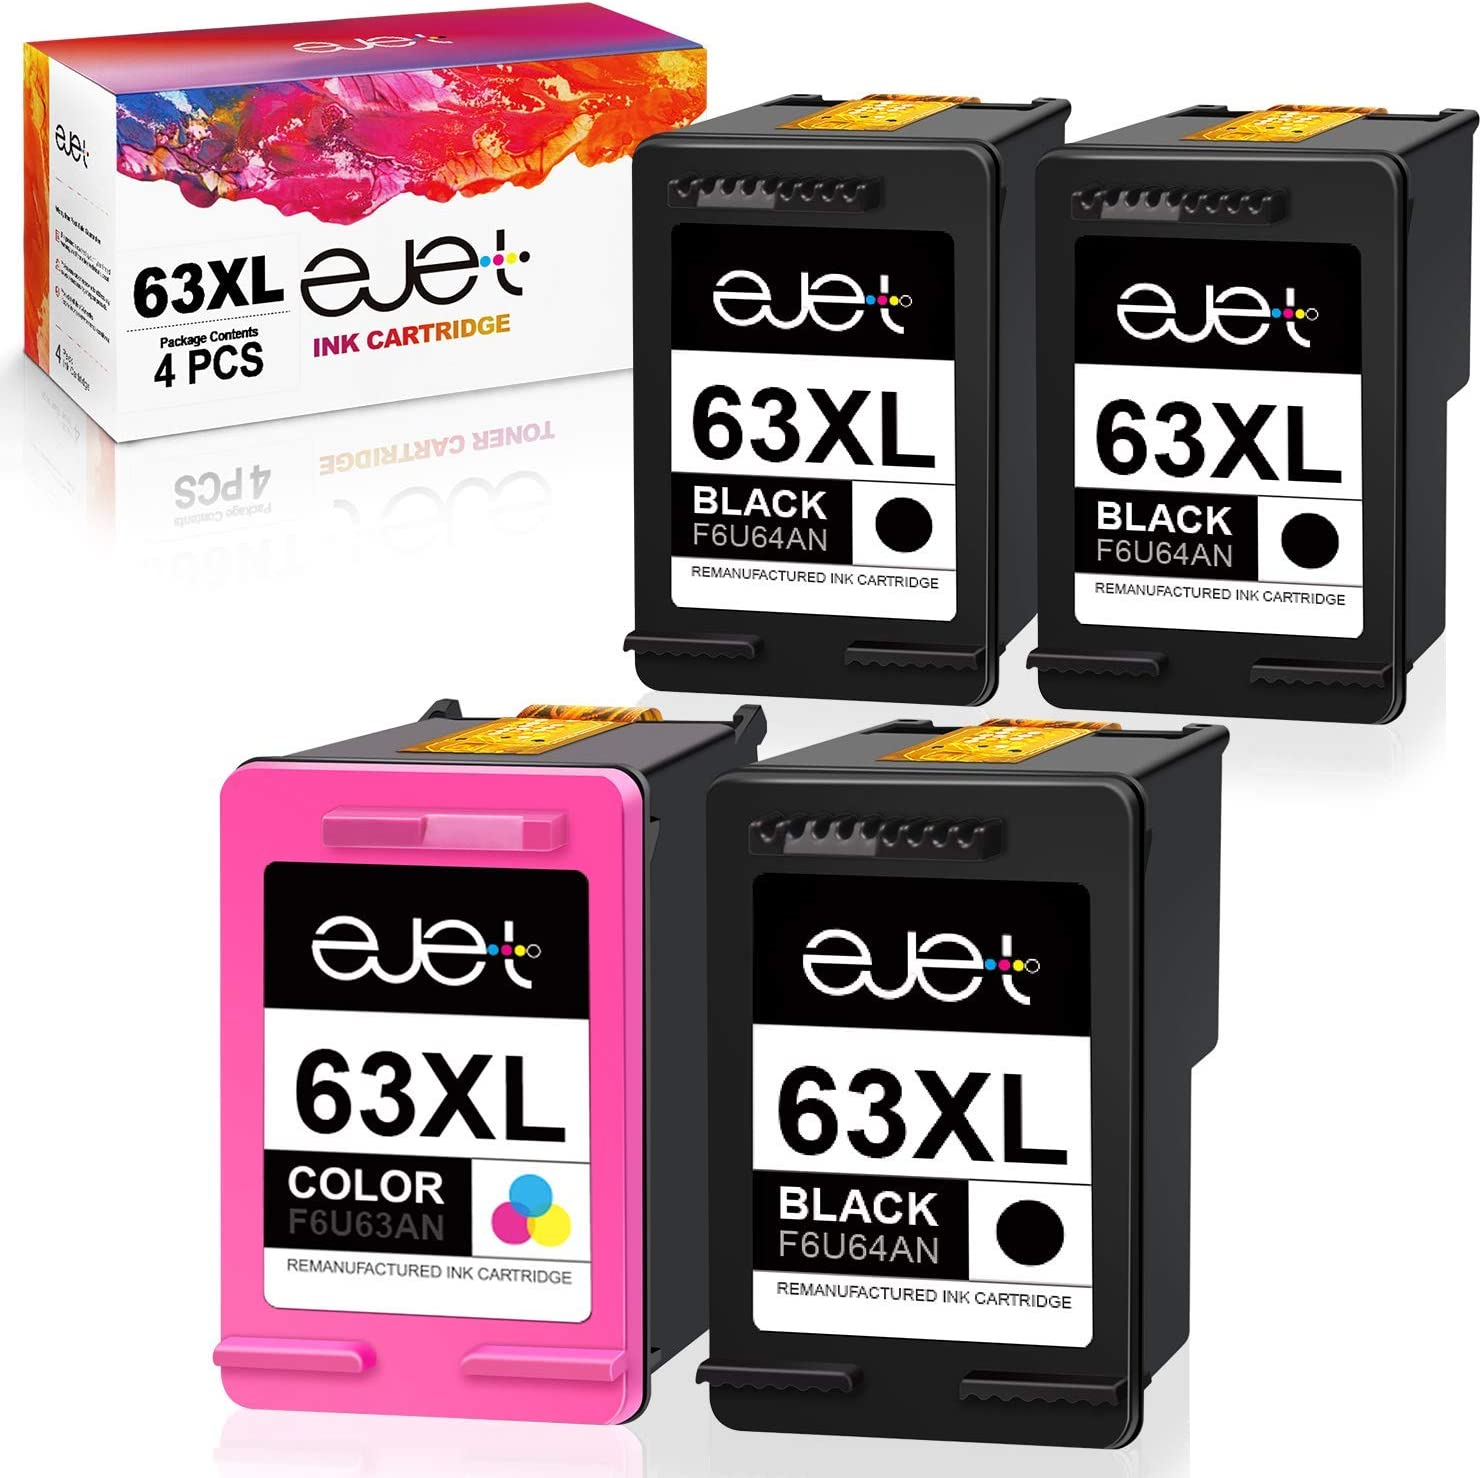 ejet Remanufactured Ink Cartridges Replacement for HP 63XL 2 Pack (1 Black, 1 Color) Bundled with 2 Black